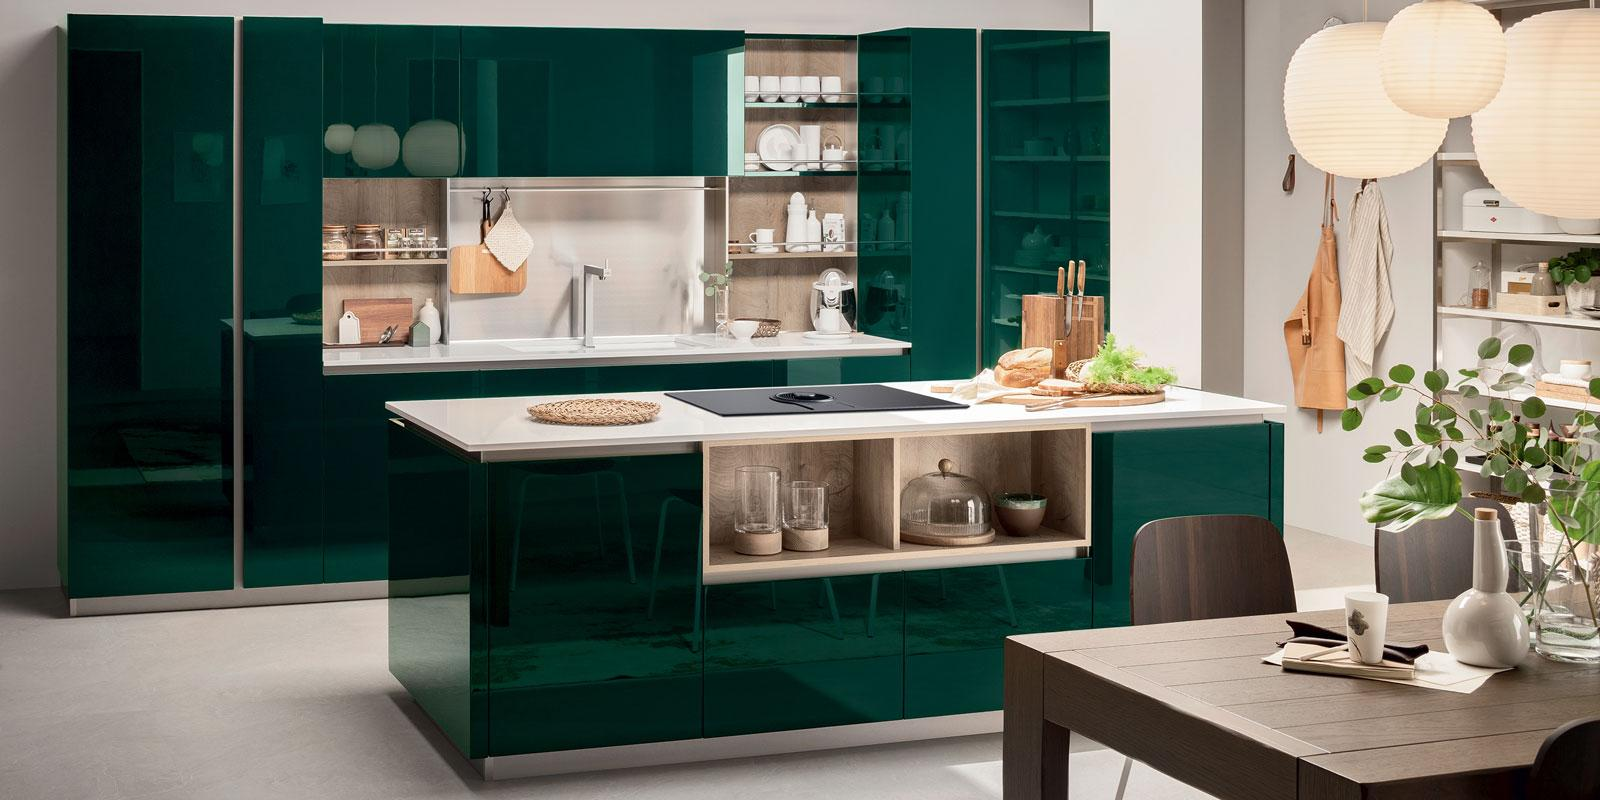 Cucine con gola perfette per l 39 open space contemporaneo for Case moderne interni cucine